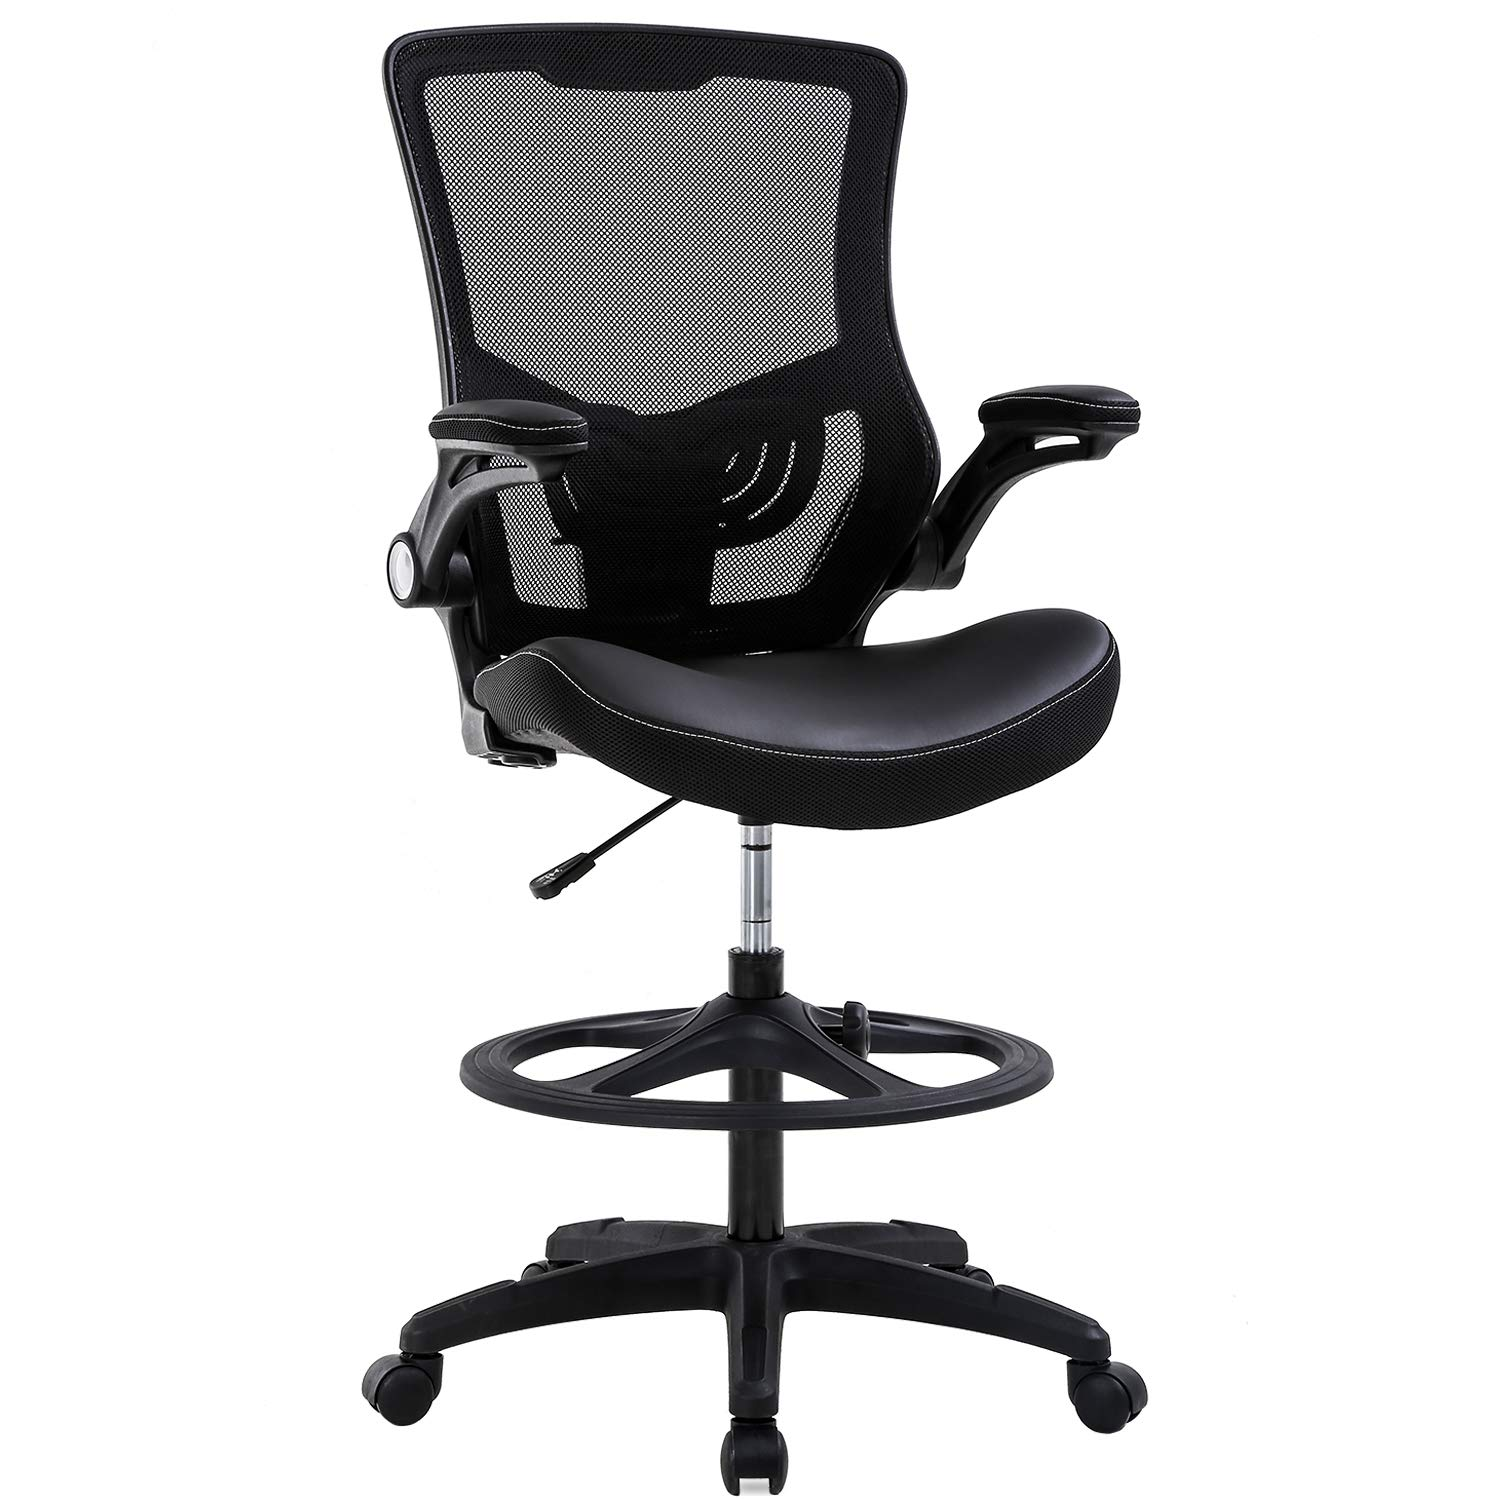 Drafting Chair Ergonomic Tall Office Chair with Flip Up Arms Foot Rest Back Support Adjustable Height Mesh Drafting Stool for Standing Desk, Black by BestOffice